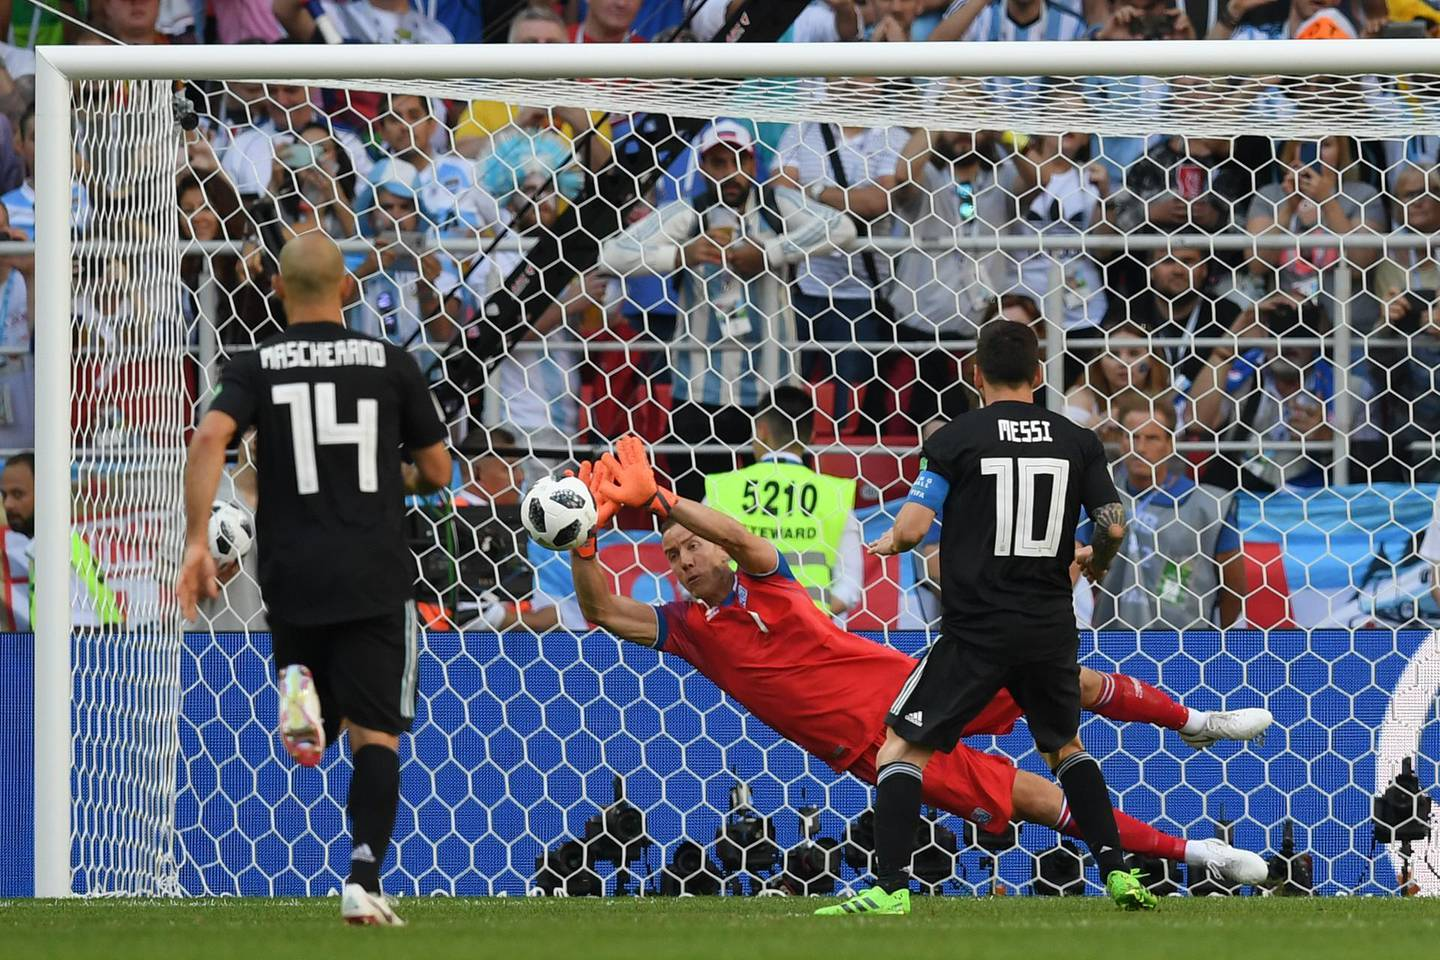 MOSCOW, RUSSIA - JUNE 16:  Hannes Halldorsson of Iceland saves a penalty from Lionel Messi of Argentina during the 2018 FIFA World Cup Russia group D match between Argentina and Iceland at Spartak Stadium on June 16, 2018 in Moscow, Russia.  (Photo by Matthias Hangst/Getty Images)